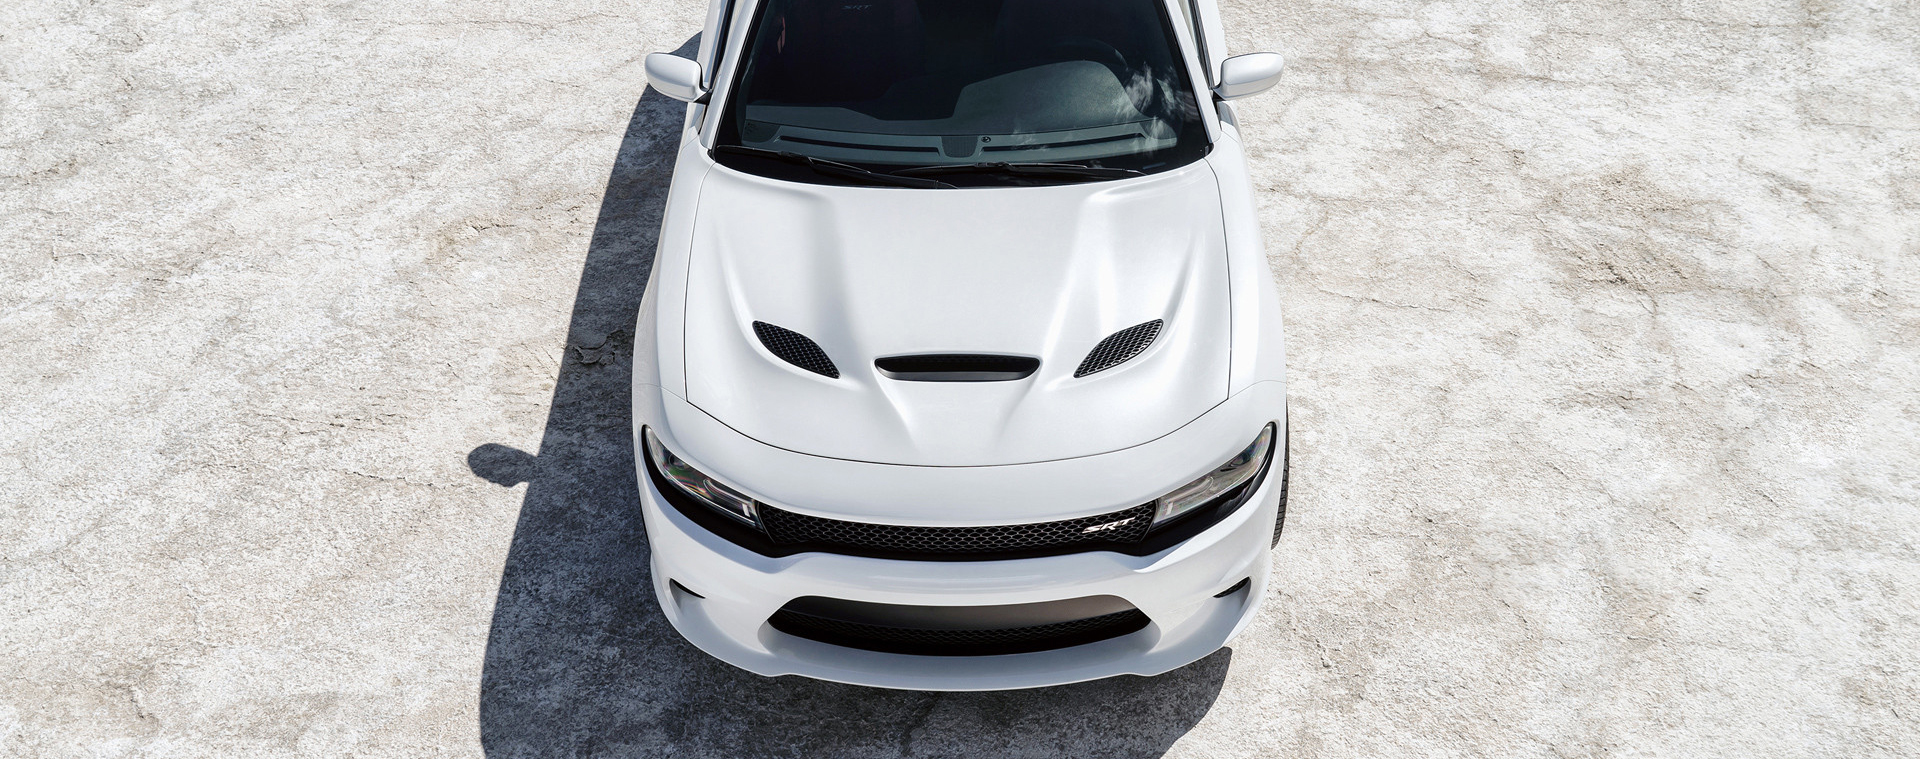 New Charger inventory at Quirk Chrysler Jeep Dodge Ram